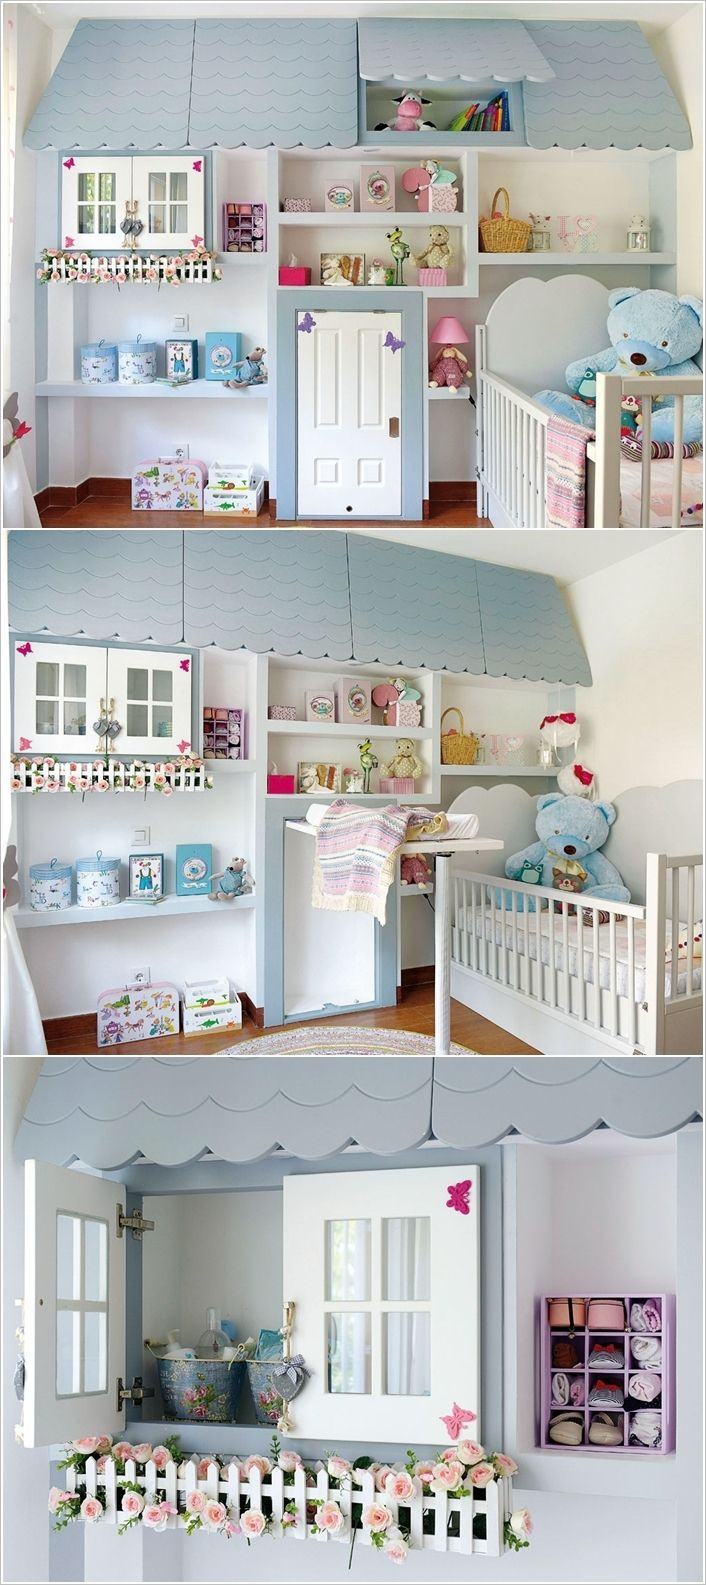 93 best Nursery Design: MIX\u0027N MATCH images on Pinterest ...